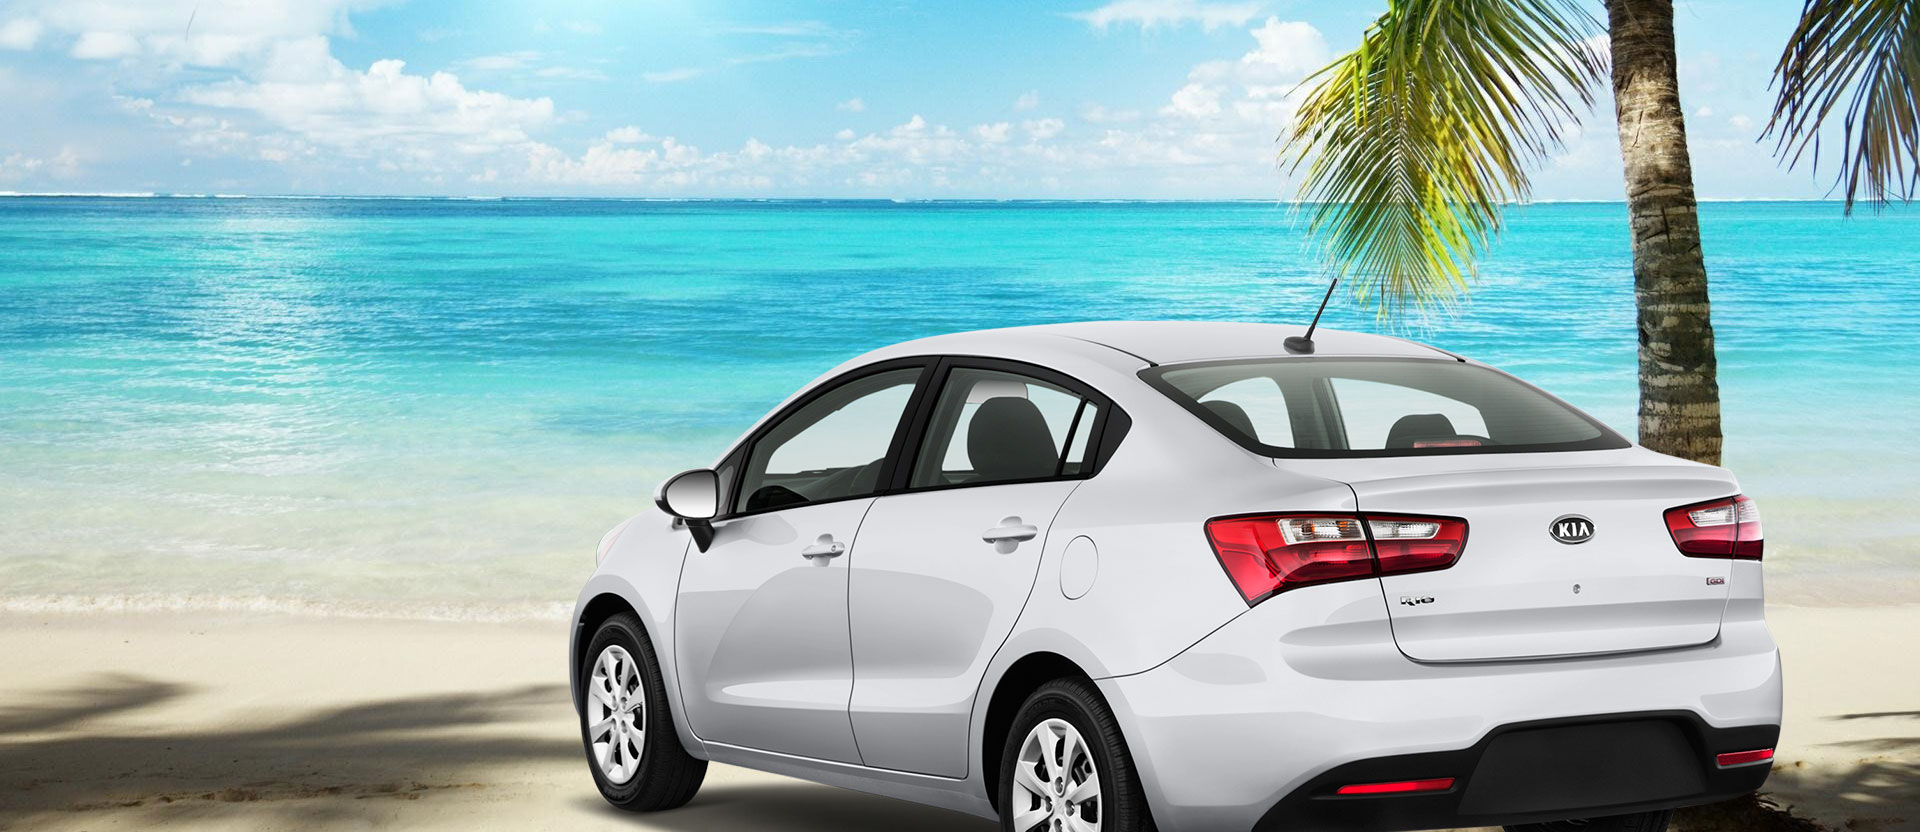 Things to Remember Before Hiring Taxi Services in Udaipur